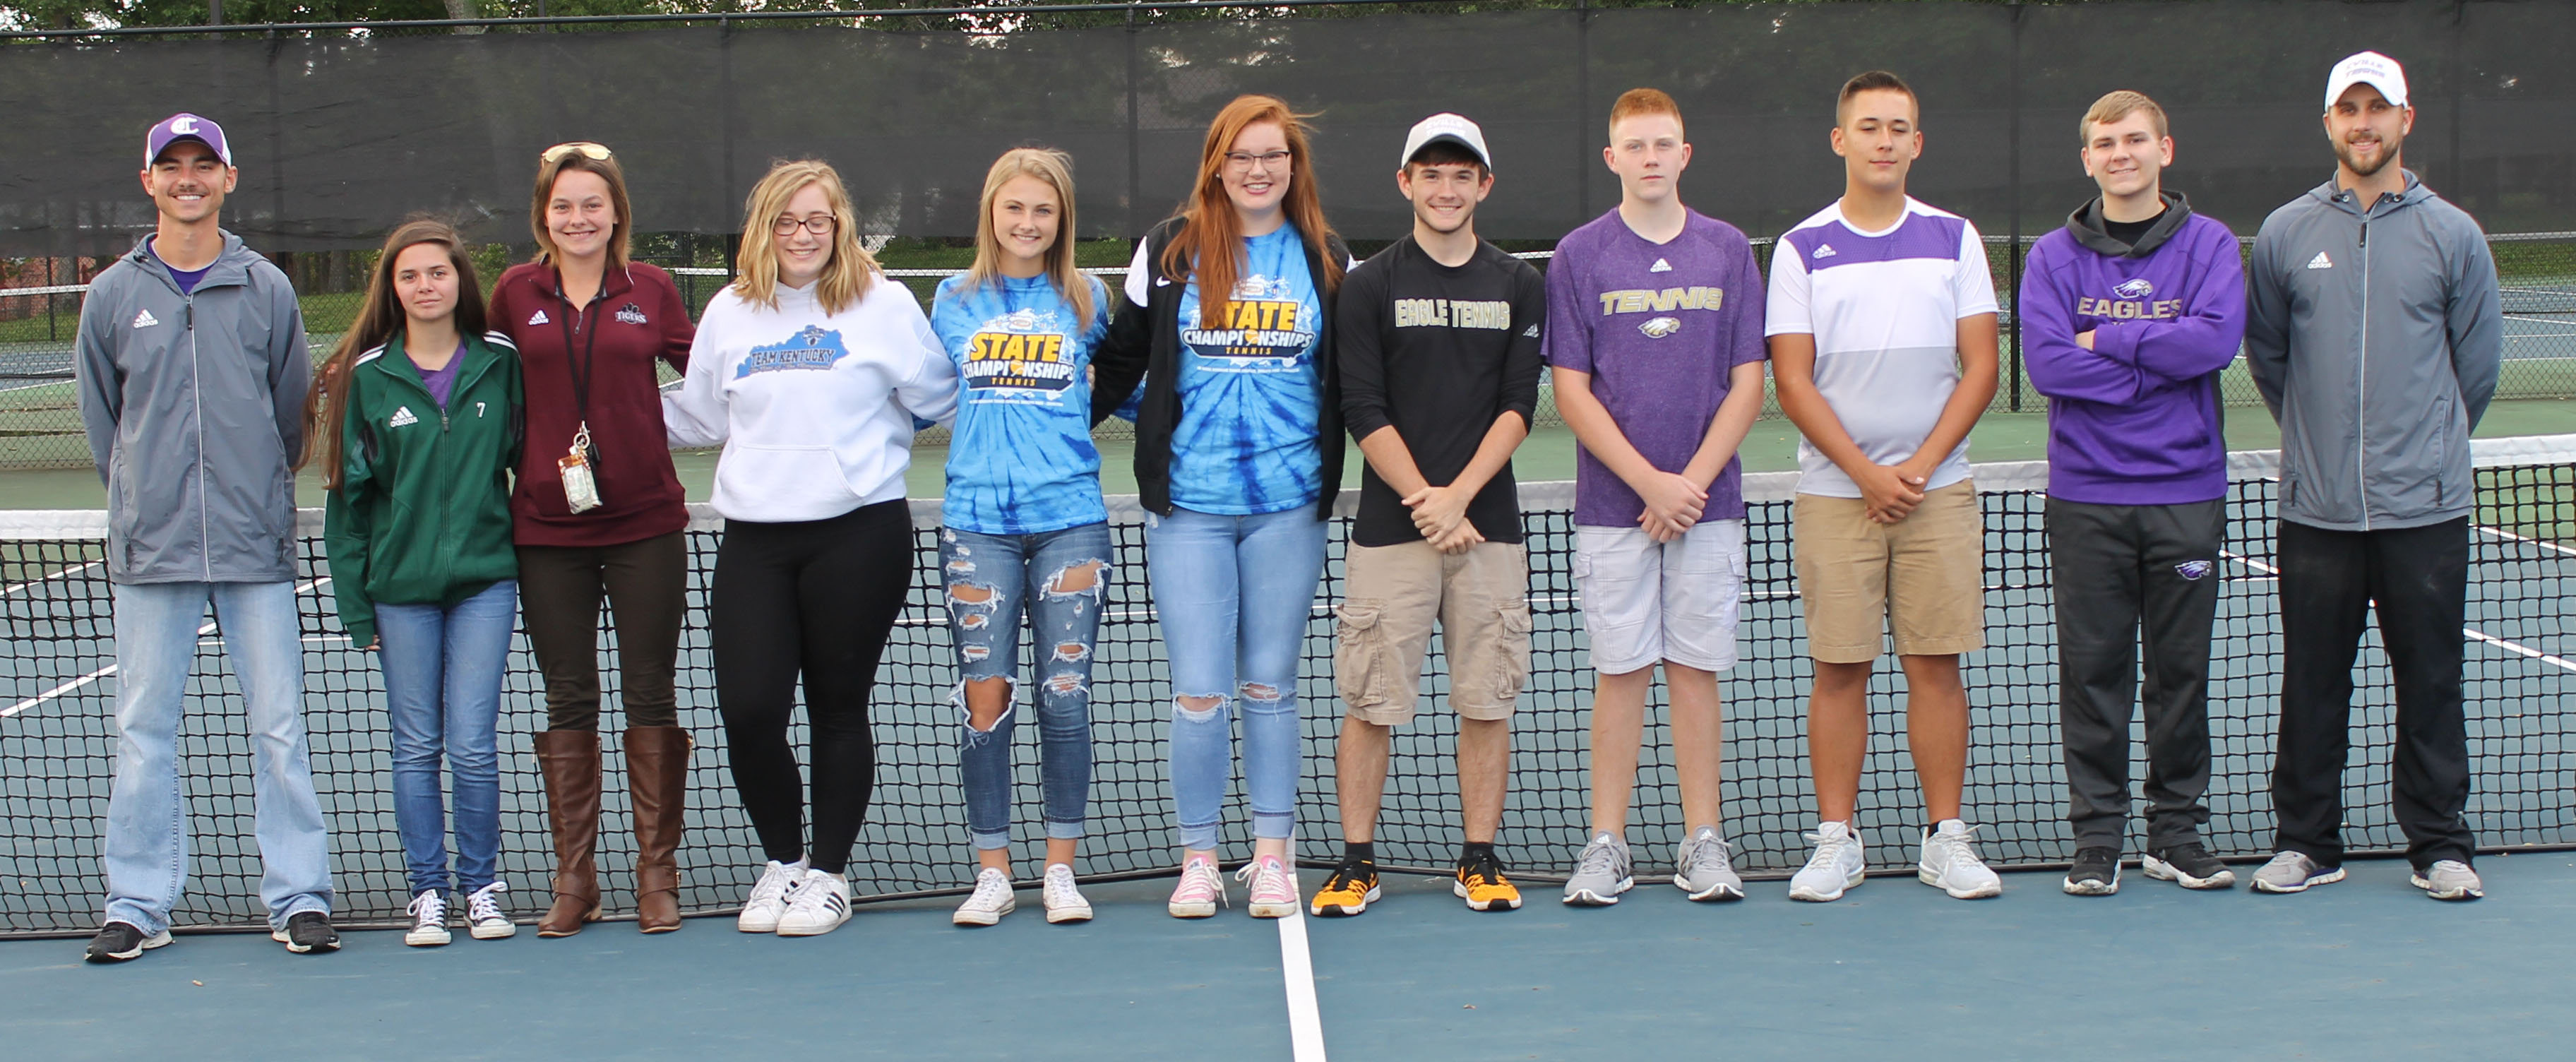 Campbellsville High School tennis players were recently honored at a banquet. This year's players were honored for their dedication to their team and their hard work this season. From left are girls' coach Bradley Harris, seniors Shauna Jones and Kyrsten Hill, freshmen Samantha Johnson and Victoria Cox, senior Mallory Haley, junior Jackson Hunt, freshman Patrick Walker, junior Cody Davis, sophomore Brandon Greer and boys' coach Tyler Hardy. Absent from the photo are junior Sara Farmer, Campbellsville Middle School eighth-grader Devan Keith, junior Cass Kidwell and senior Zack Settle.